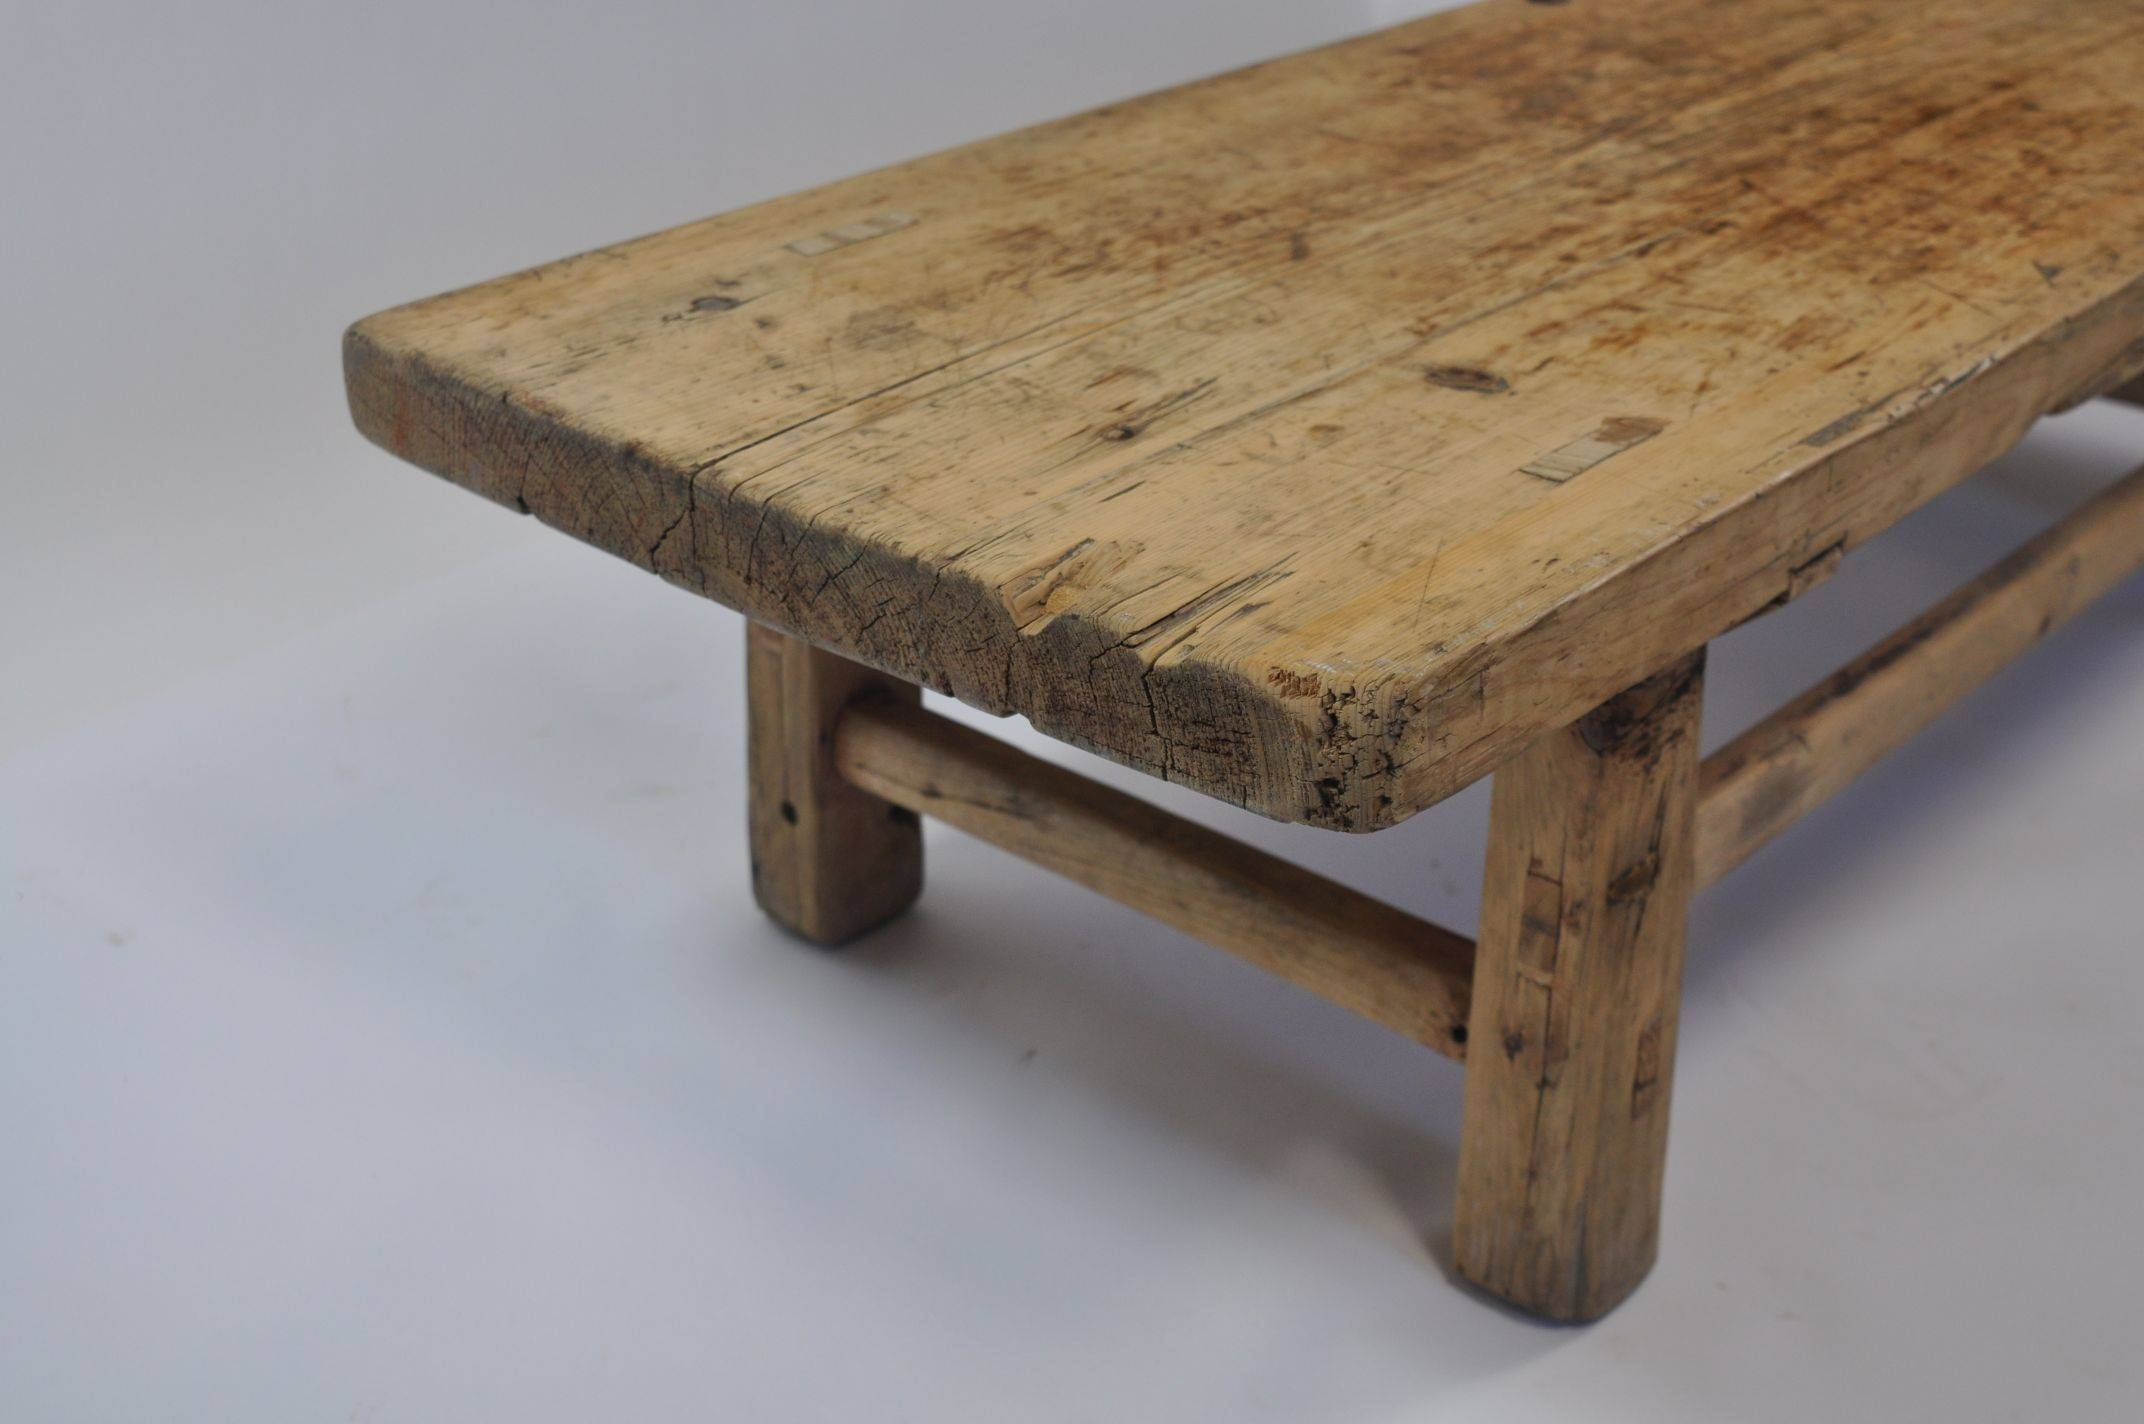 Antique Chinese Pine Coffee Table - Mecox Gardens inside Antique Pine Coffee Tables (Image 2 of 30)